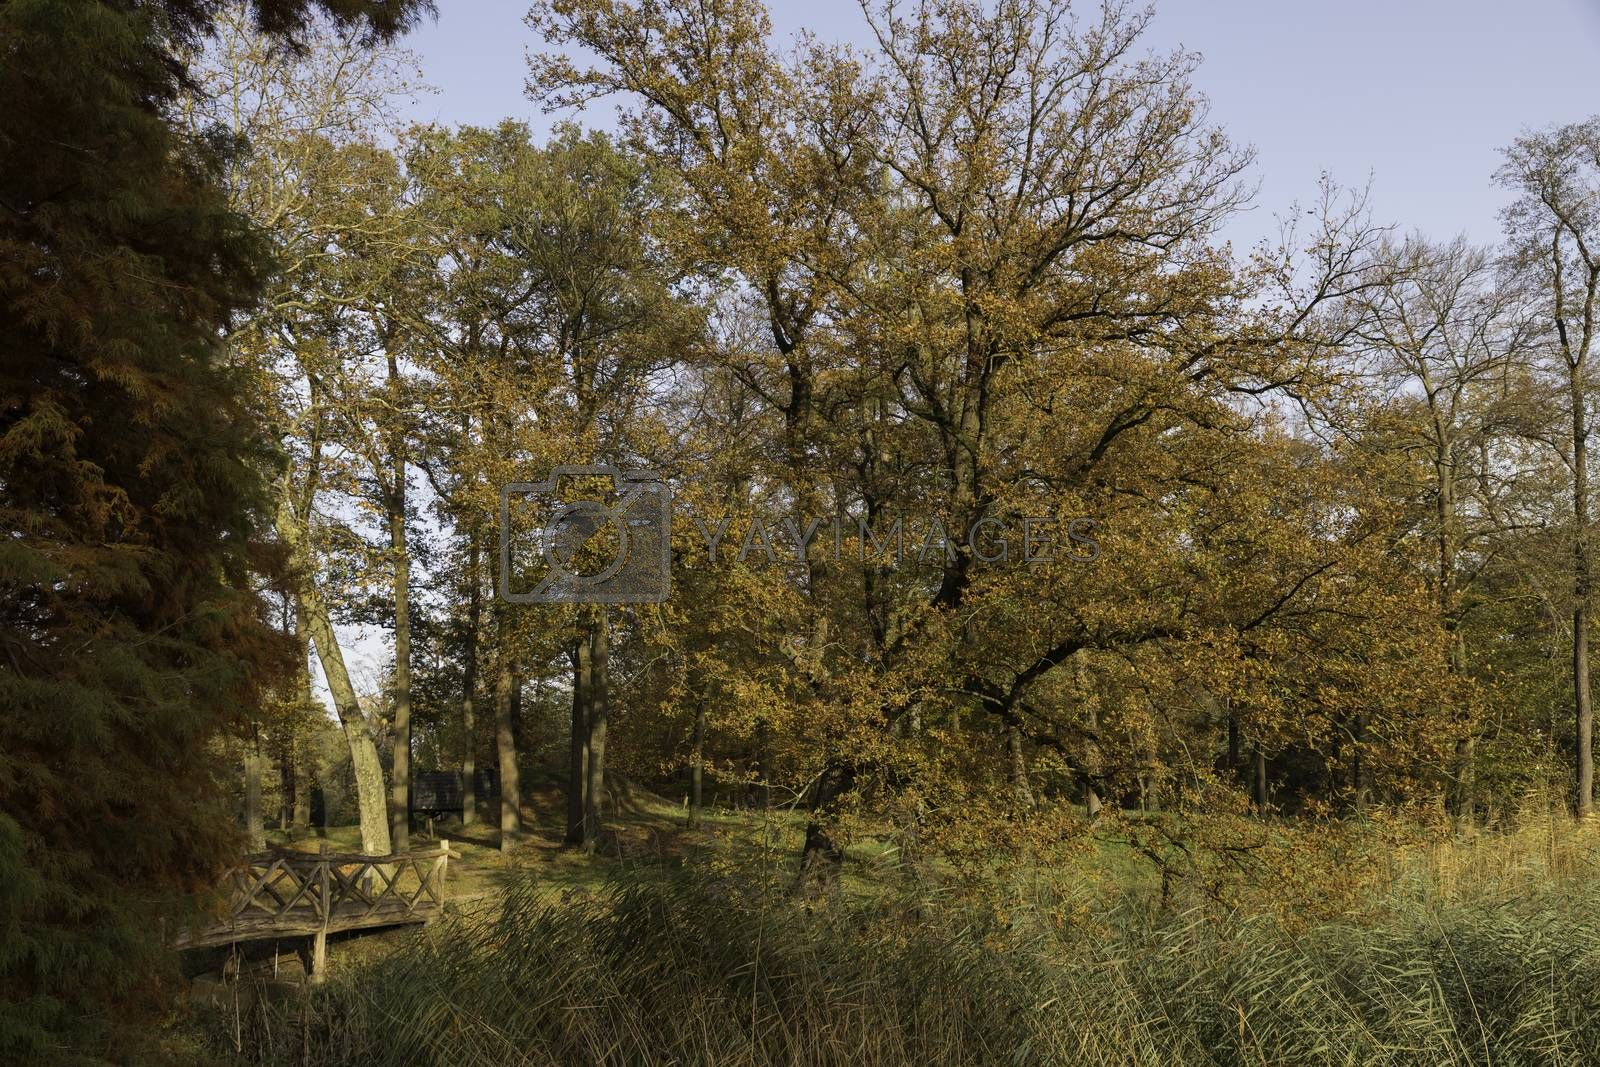 autum forest with red brown and golden colors in national park de veluwe in holland